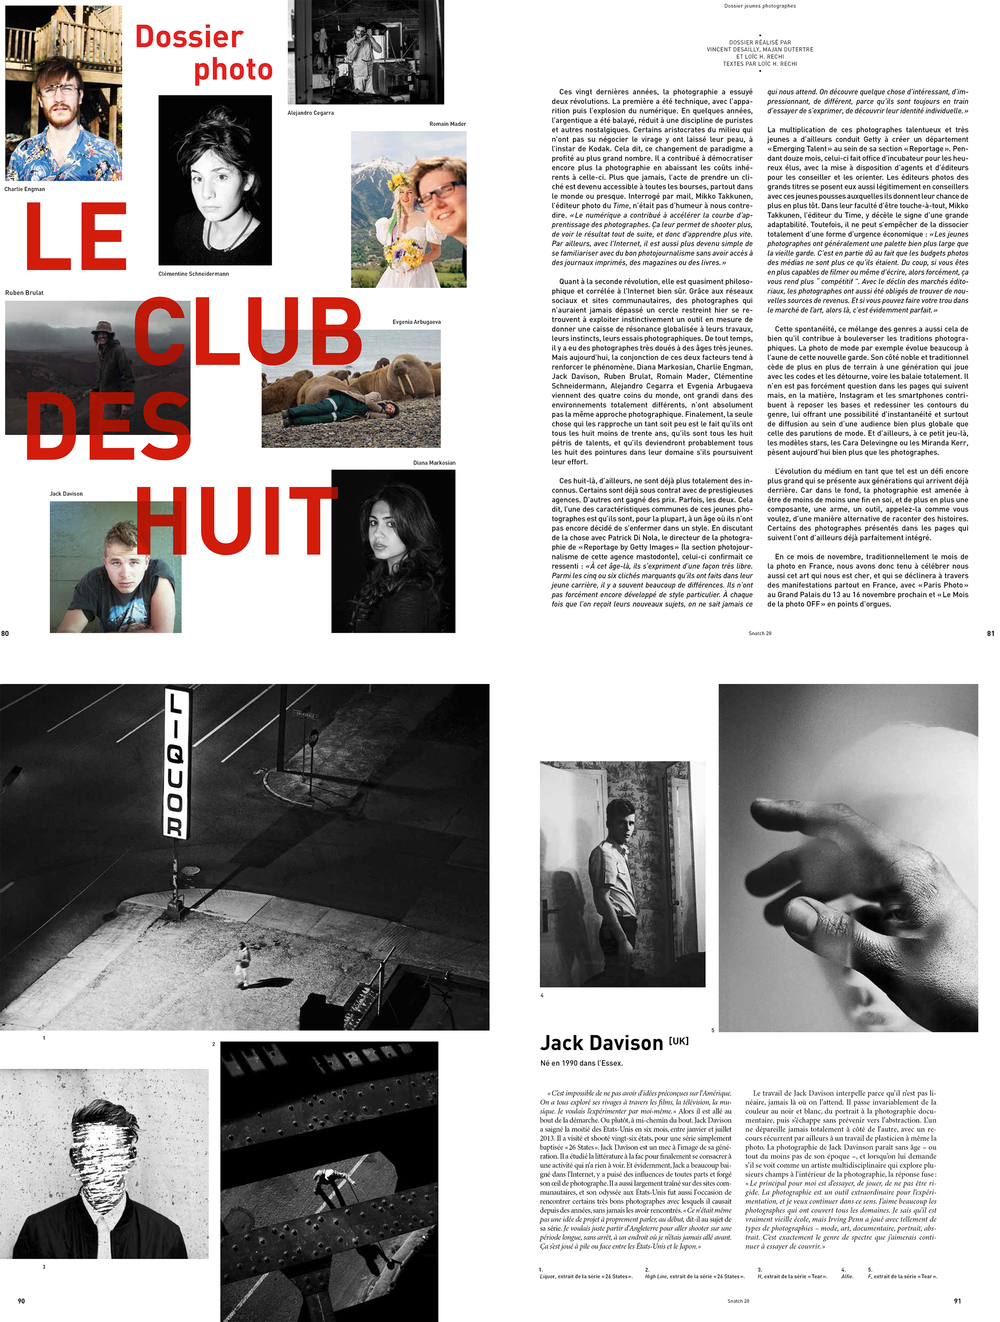 November 2014: Stoked to be part of Snatch Magazines 'Les huit jeunés qui réinventent la photographie'. For those of you who can't be bothered to paste that into google translate - it roughly means The 8 Young Photographers Reinventing Photography, apparently... It's available across France.